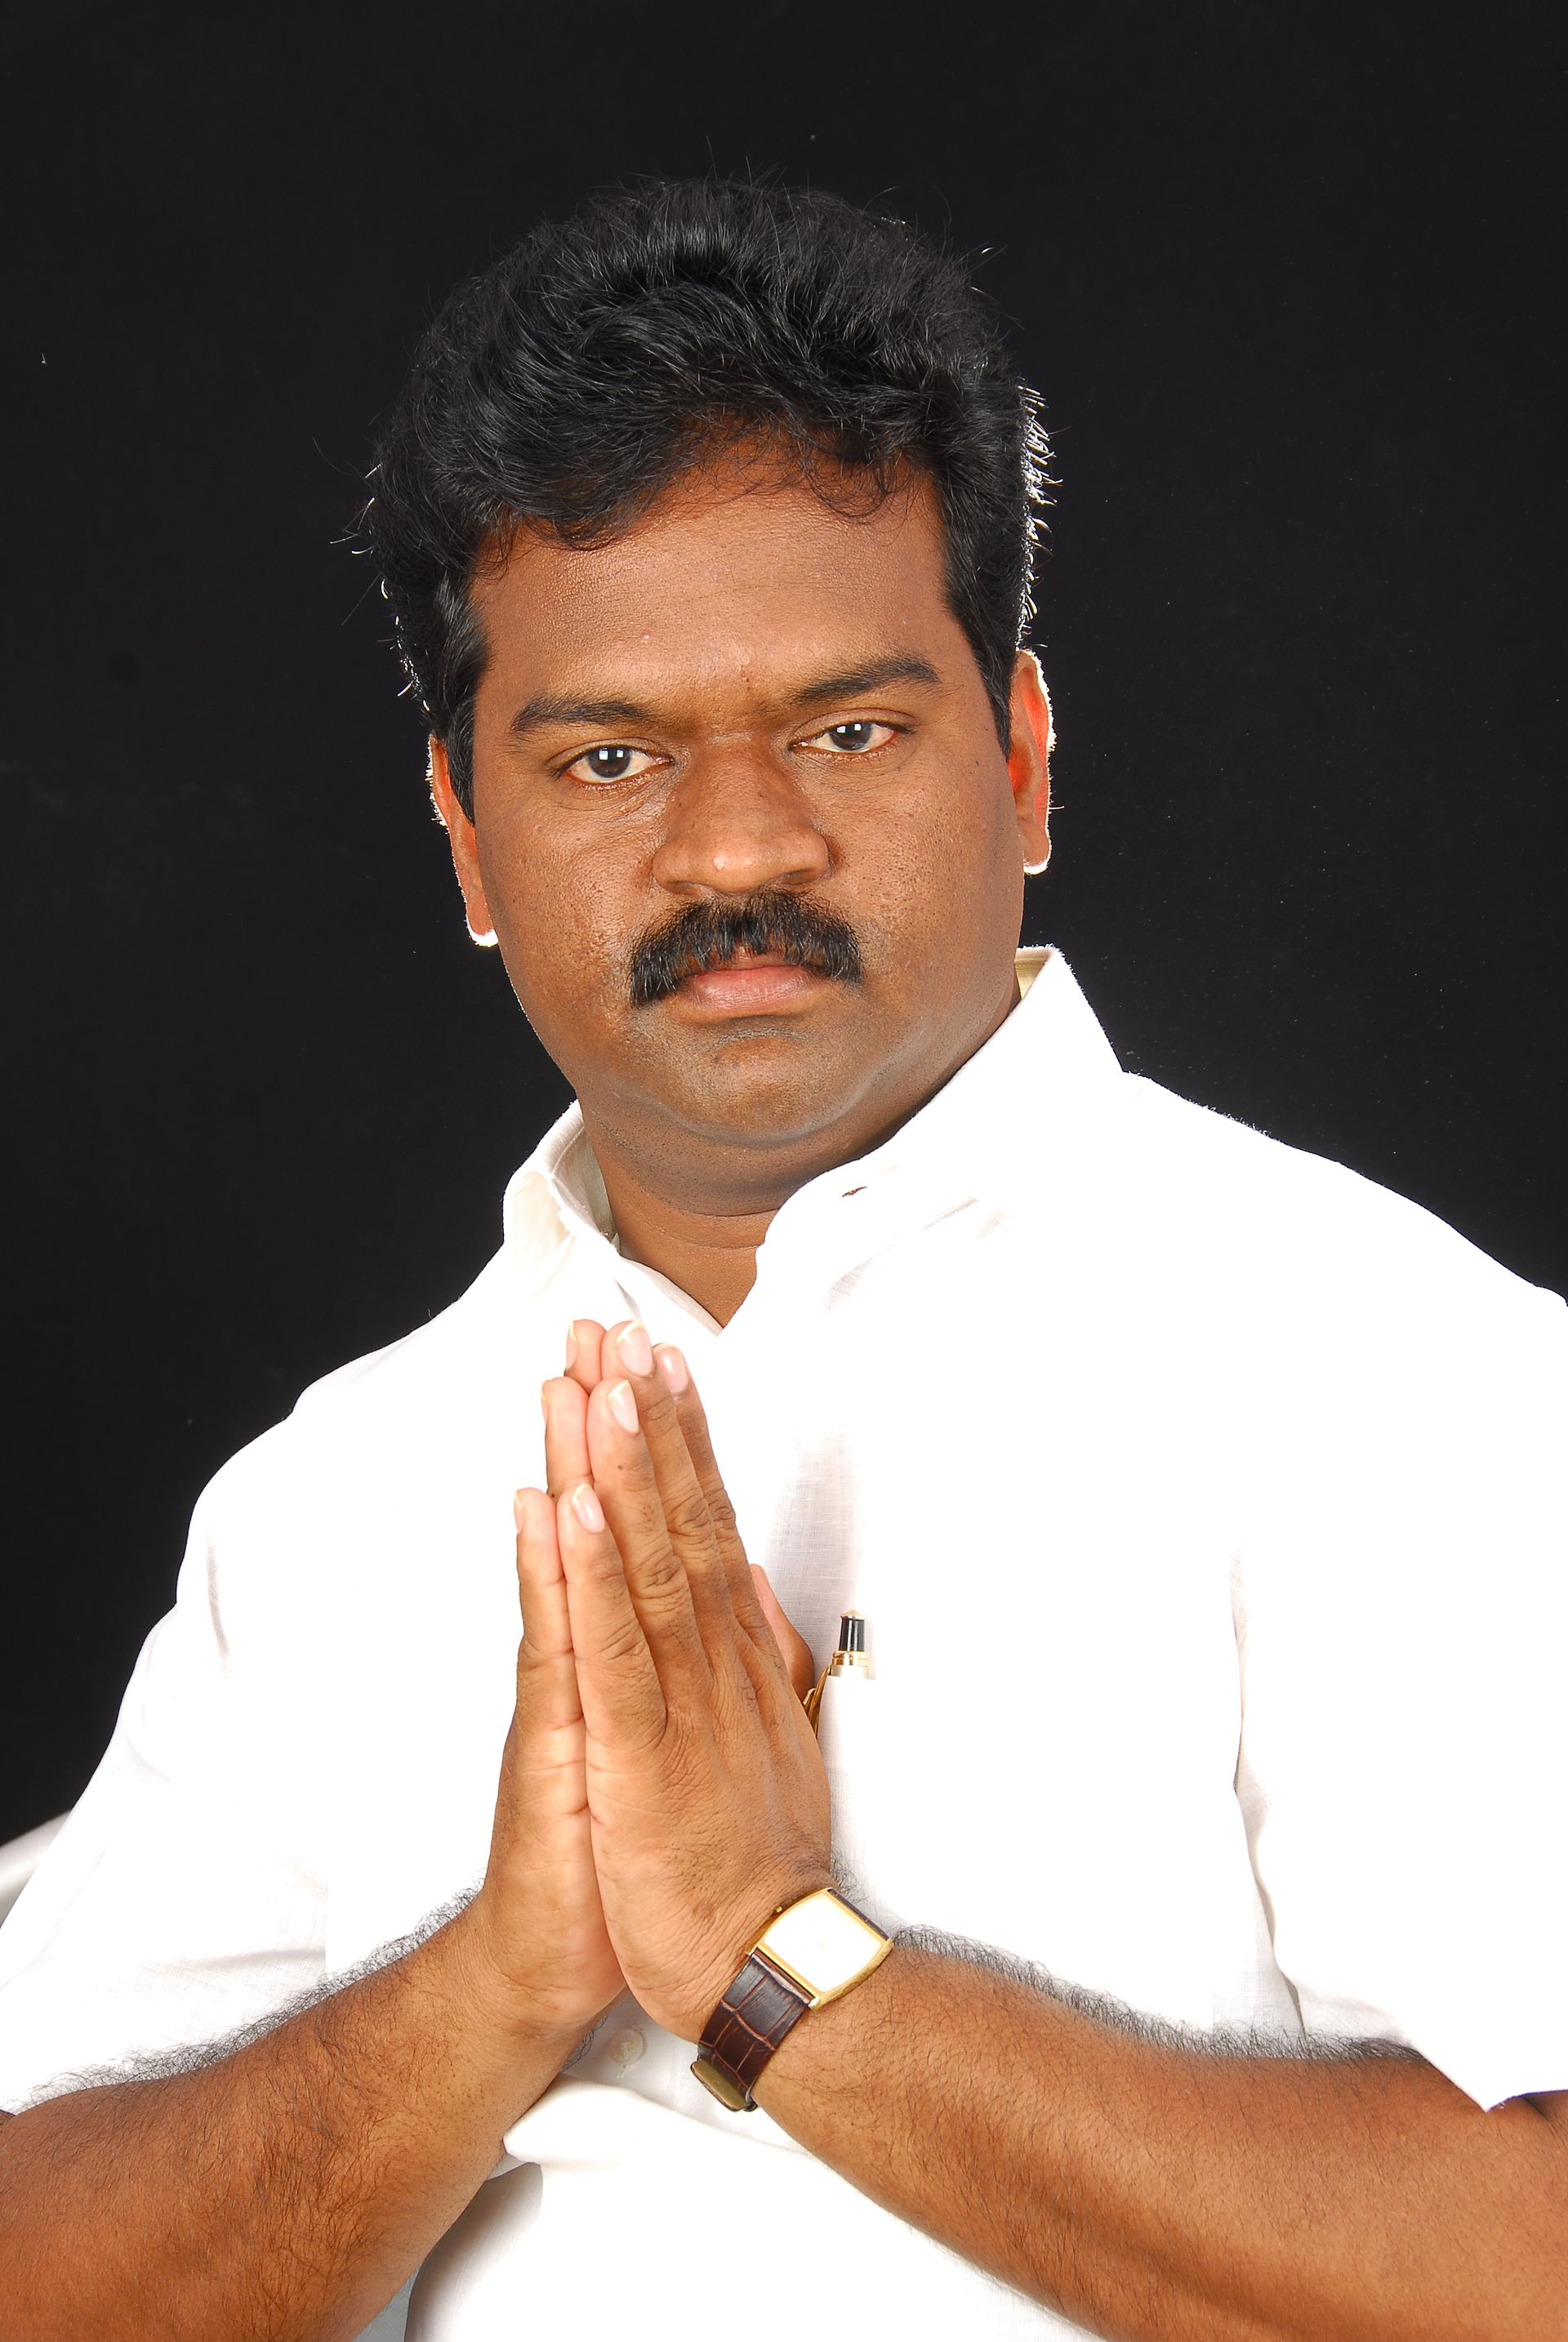 dharmapuri hindu personals Dharmapuri's best 100% free hindu dating site meet thousands of single hindus in dharmapuri with mingle2's free hindu personal ads and chat rooms our network of hindu men and women in dharmapuri is the perfect place to make hindu friends or find a hindu boyfriend or girlfriend in dharmapuri.